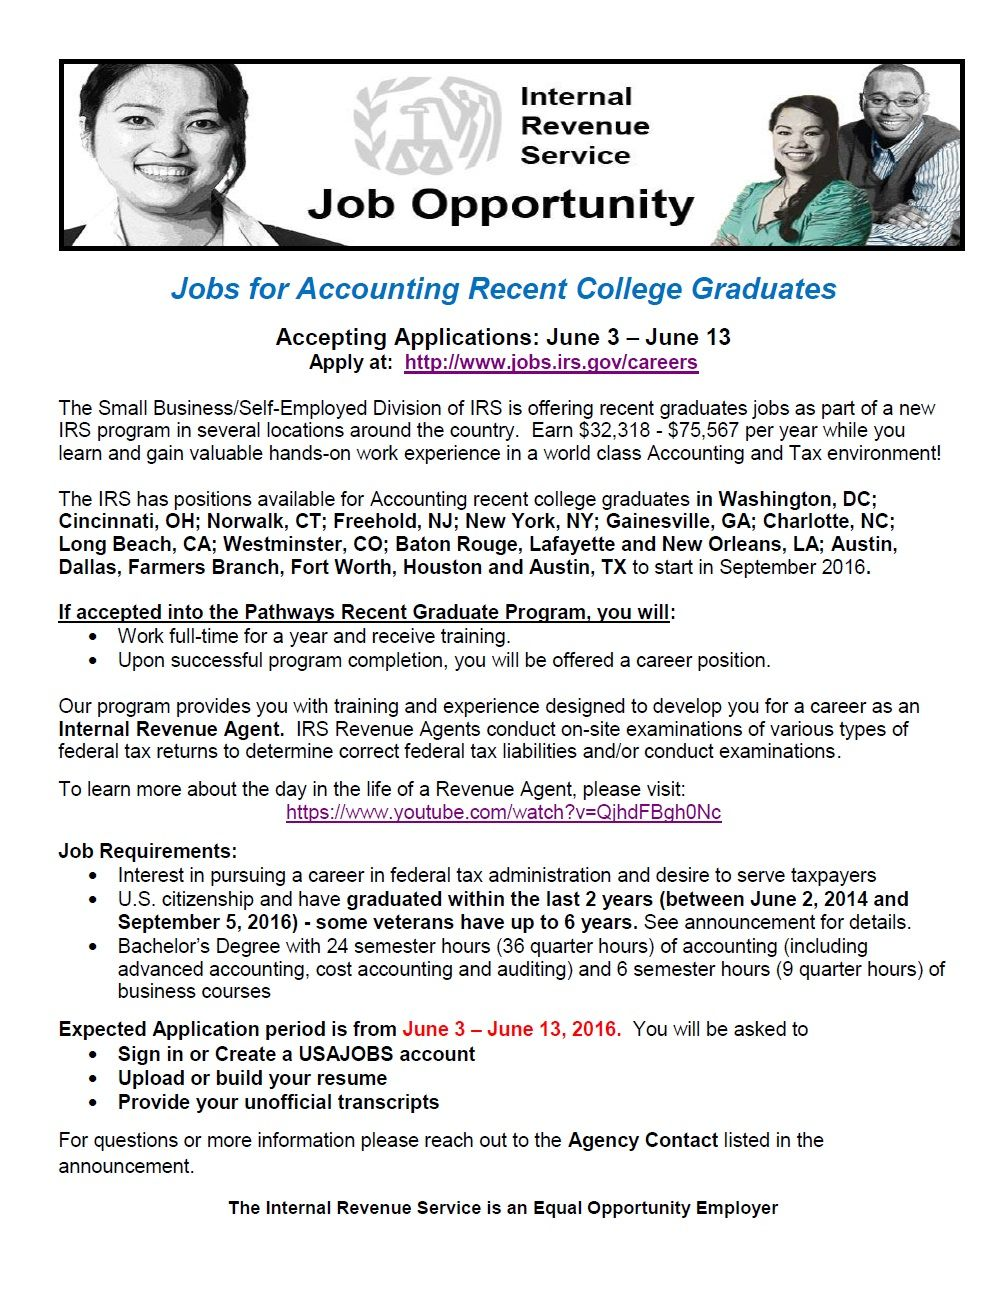 The IRS is hiring! Check out employment opportunities at